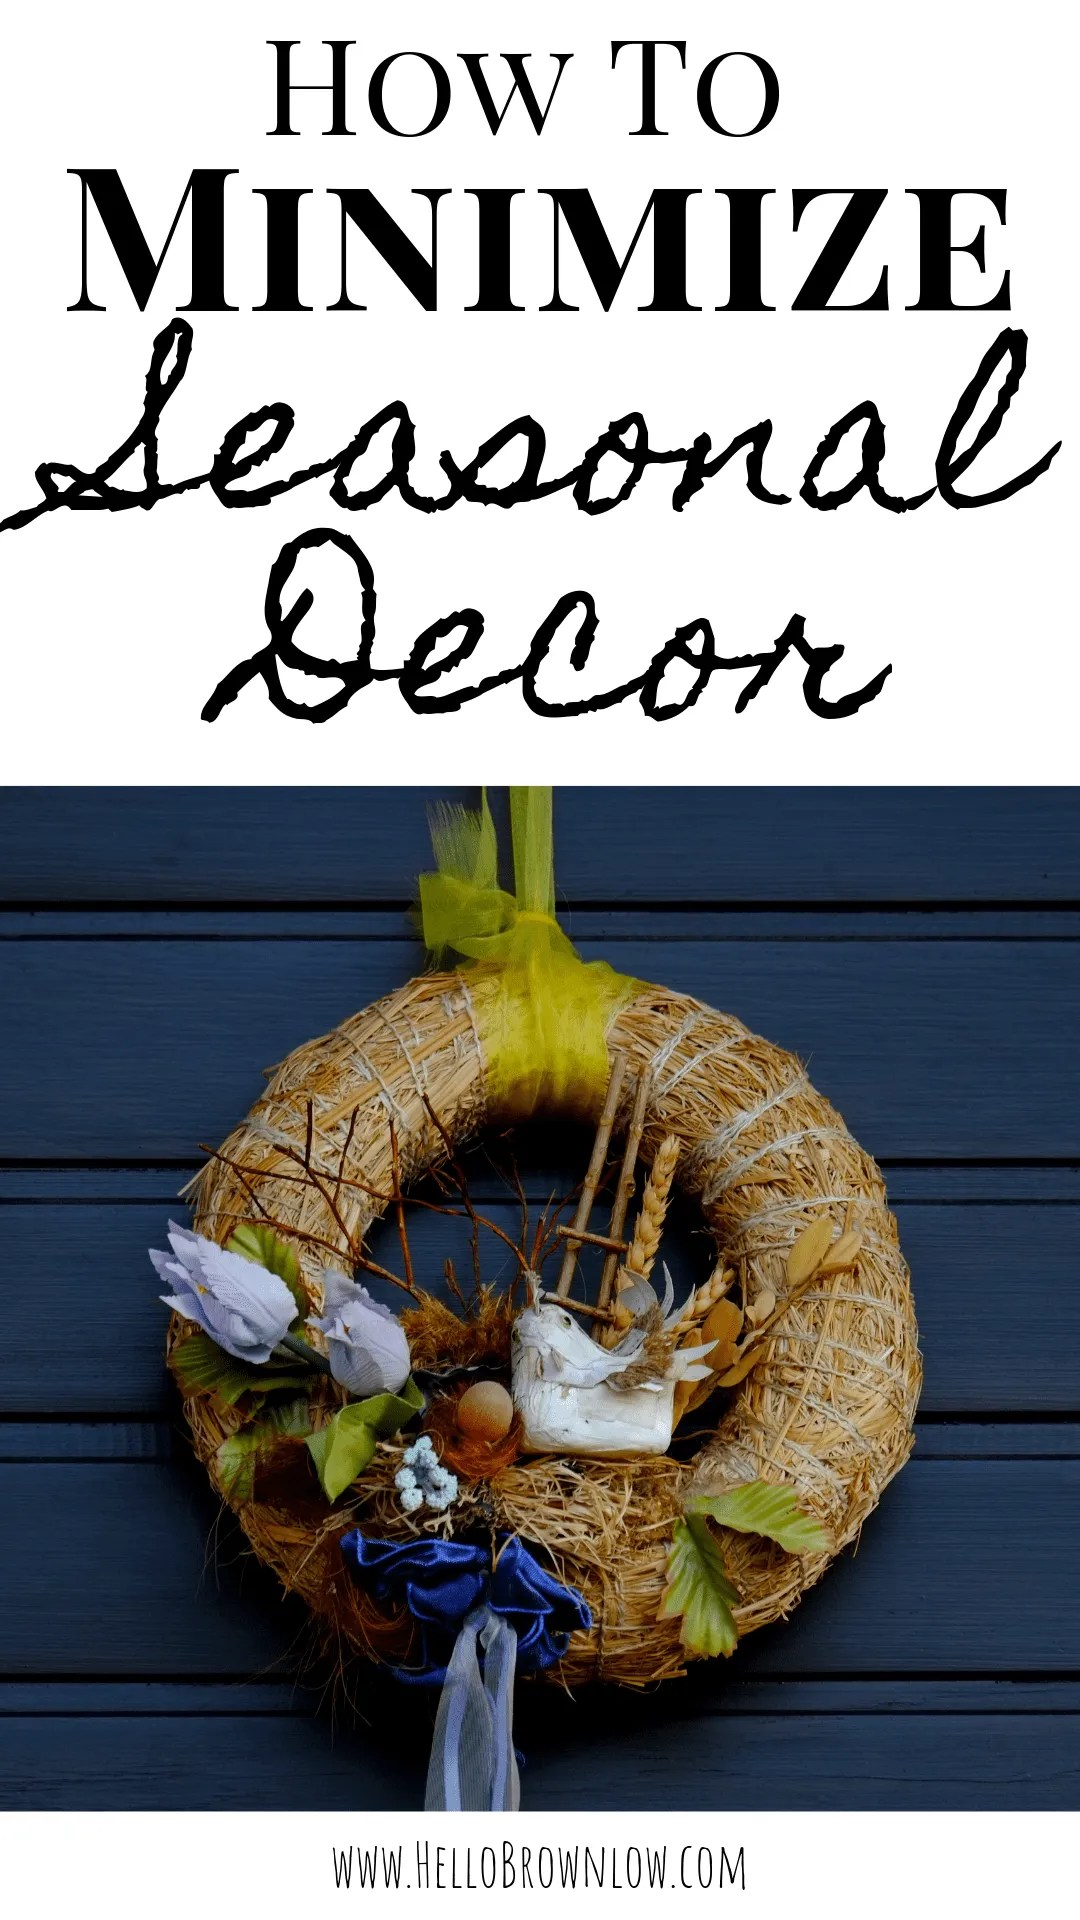 How to Declutter and Minimize Your Seasonal Decor #decluttering #sparkjoy #minimalistdecor